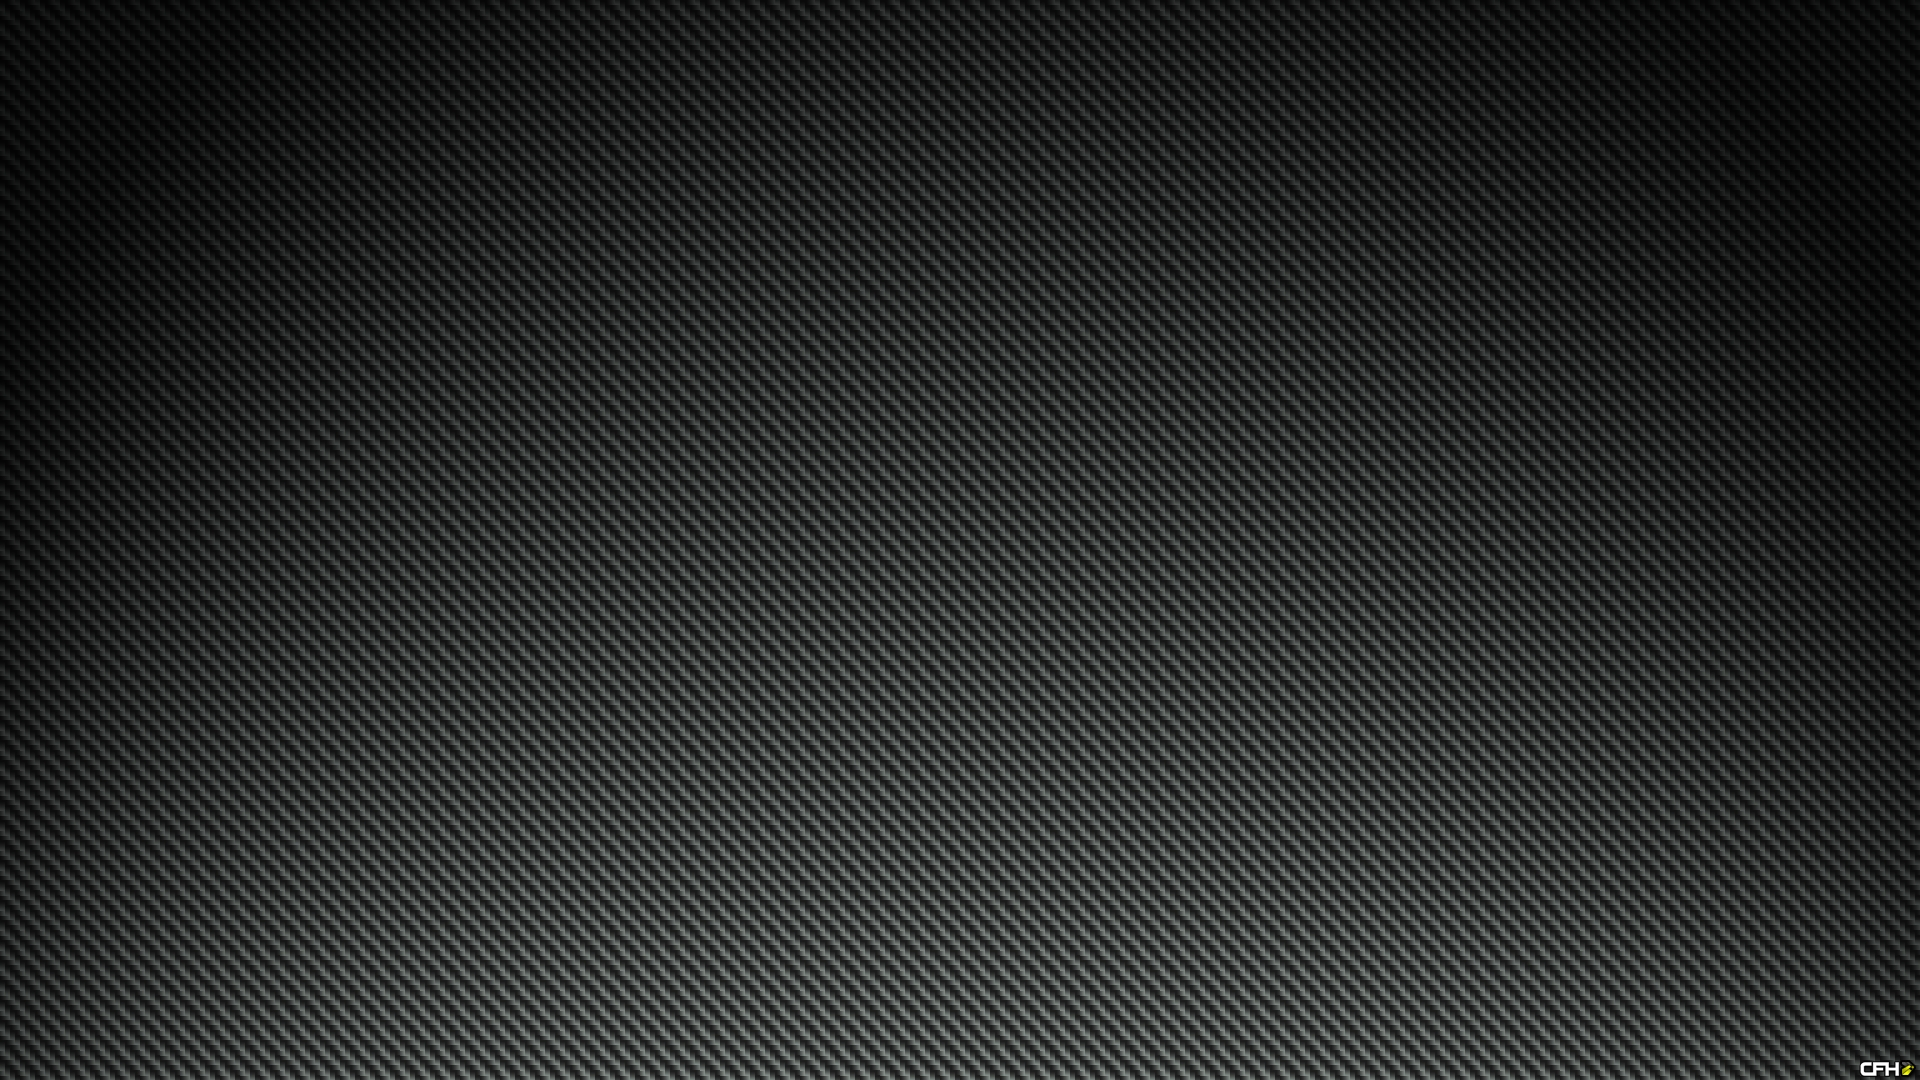 carbon fiber wallpapers group (72+)